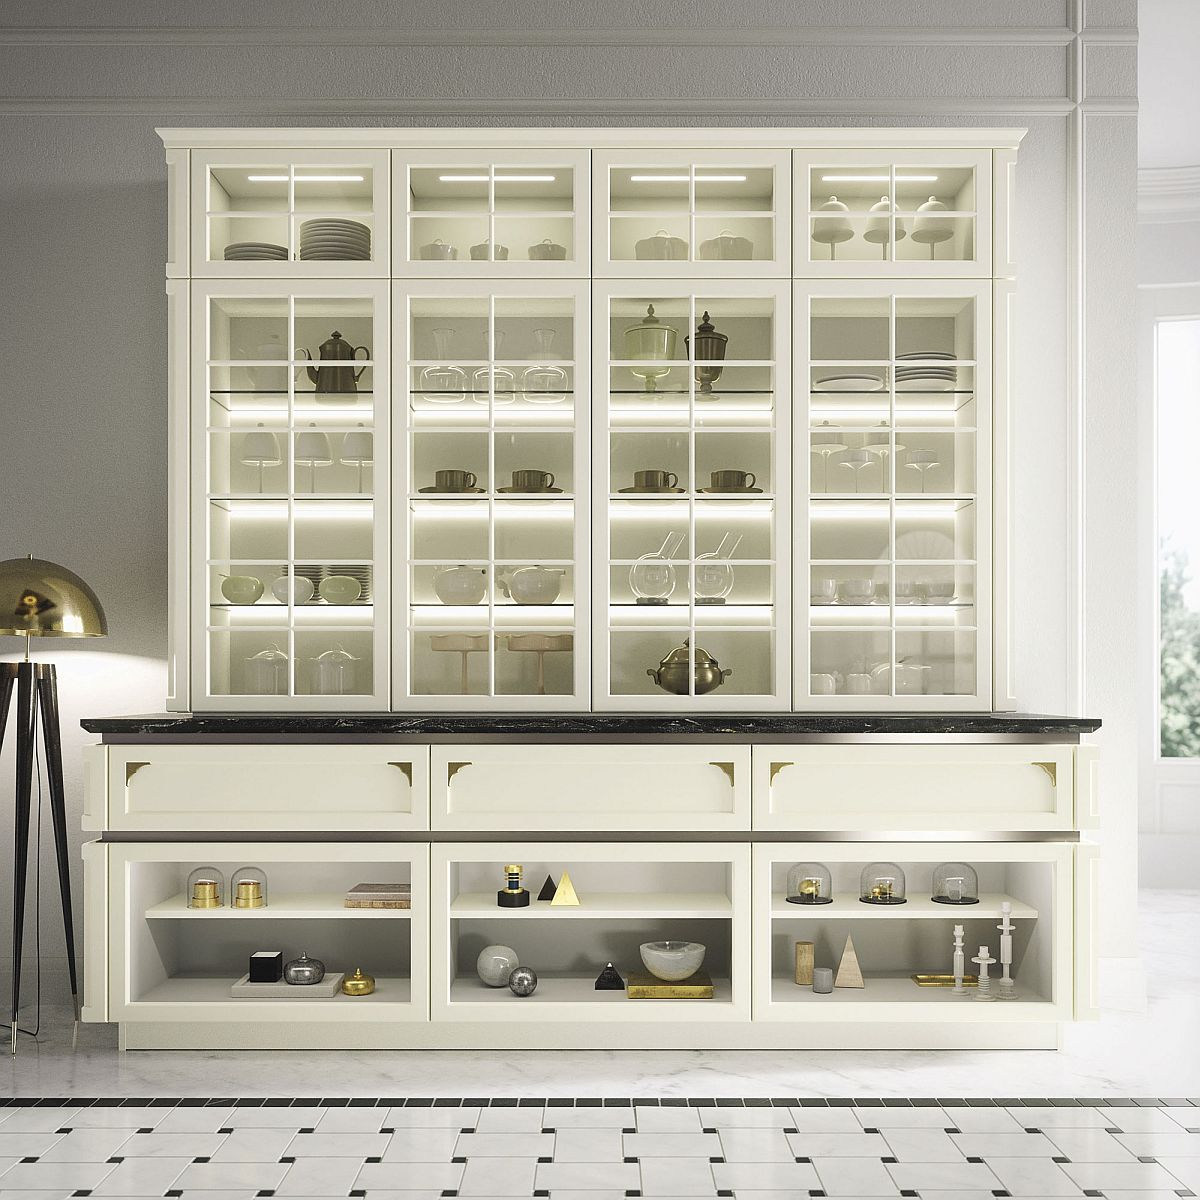 Gorgeous glass cabinet and backlit shelving become an integral part of the fabulous kitchen